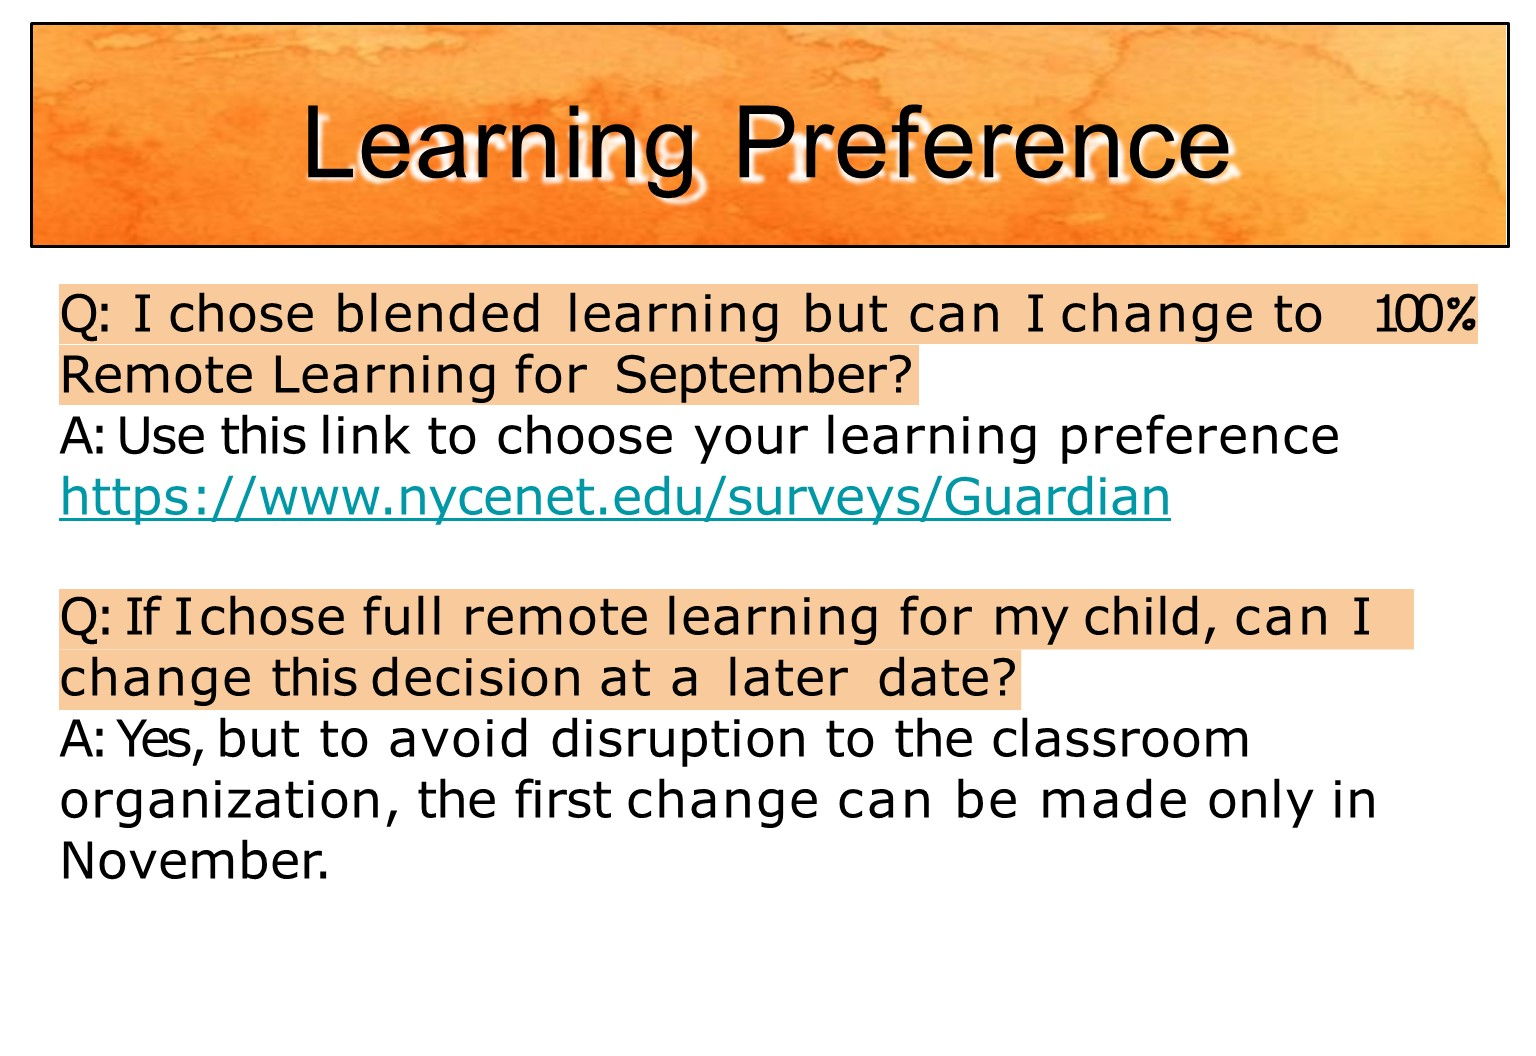 Learning preferences